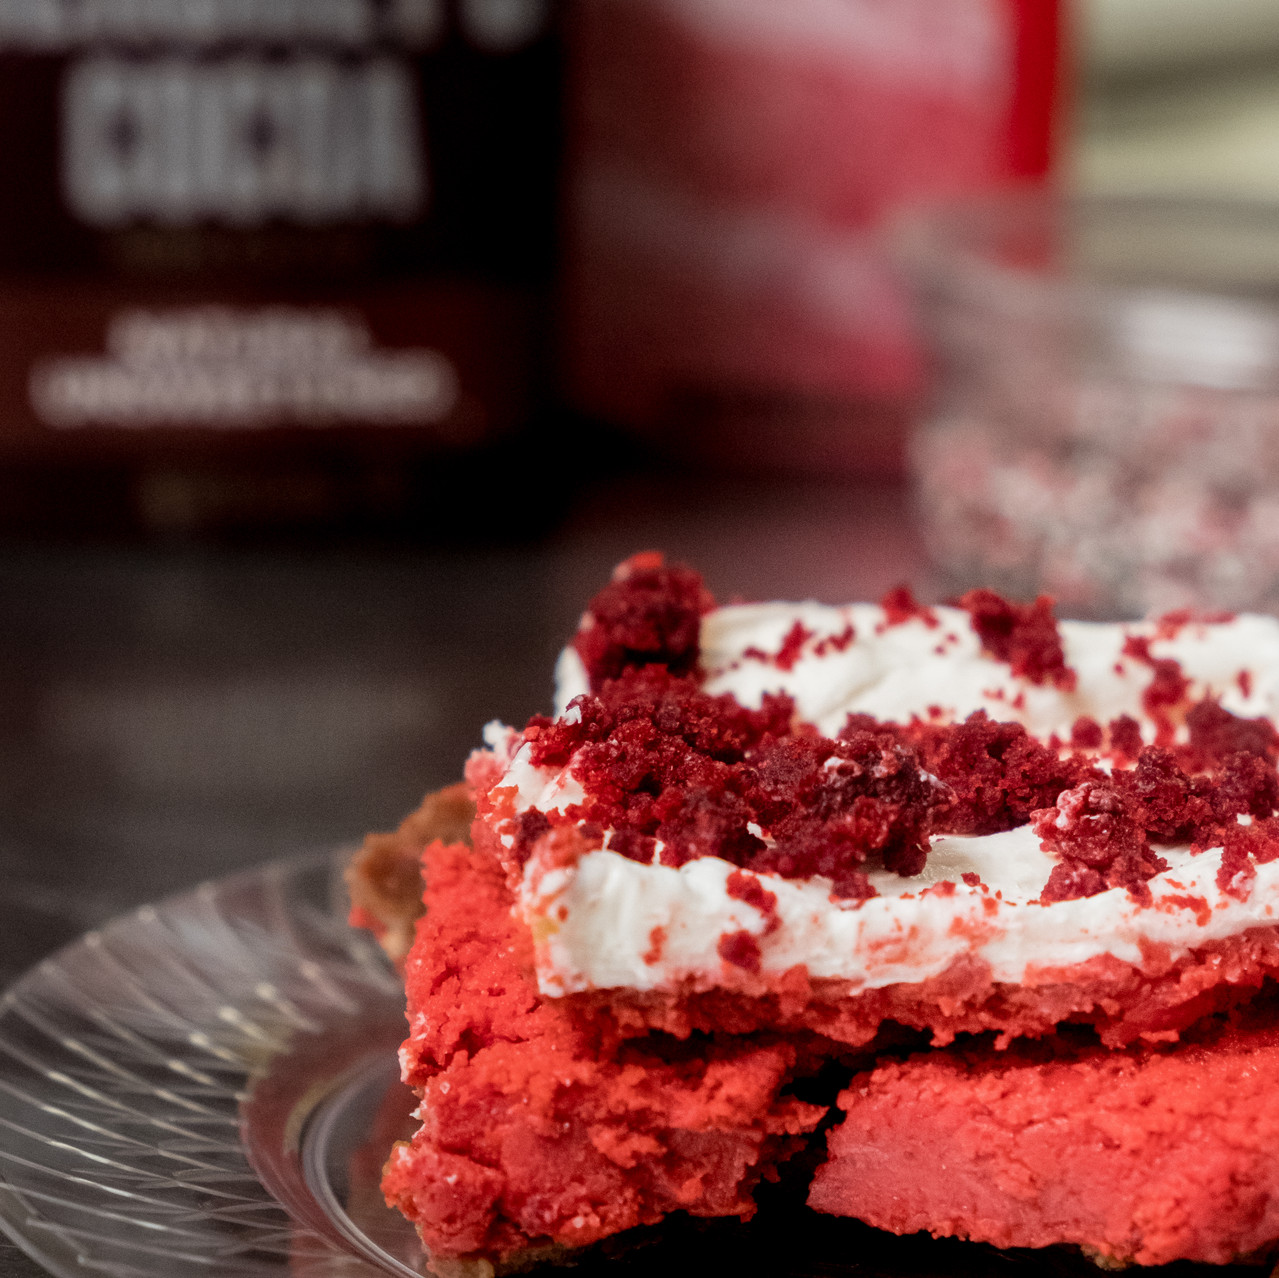 Red Velvet Cheesecake from Adonna's Bakery in Pensacola Florida!